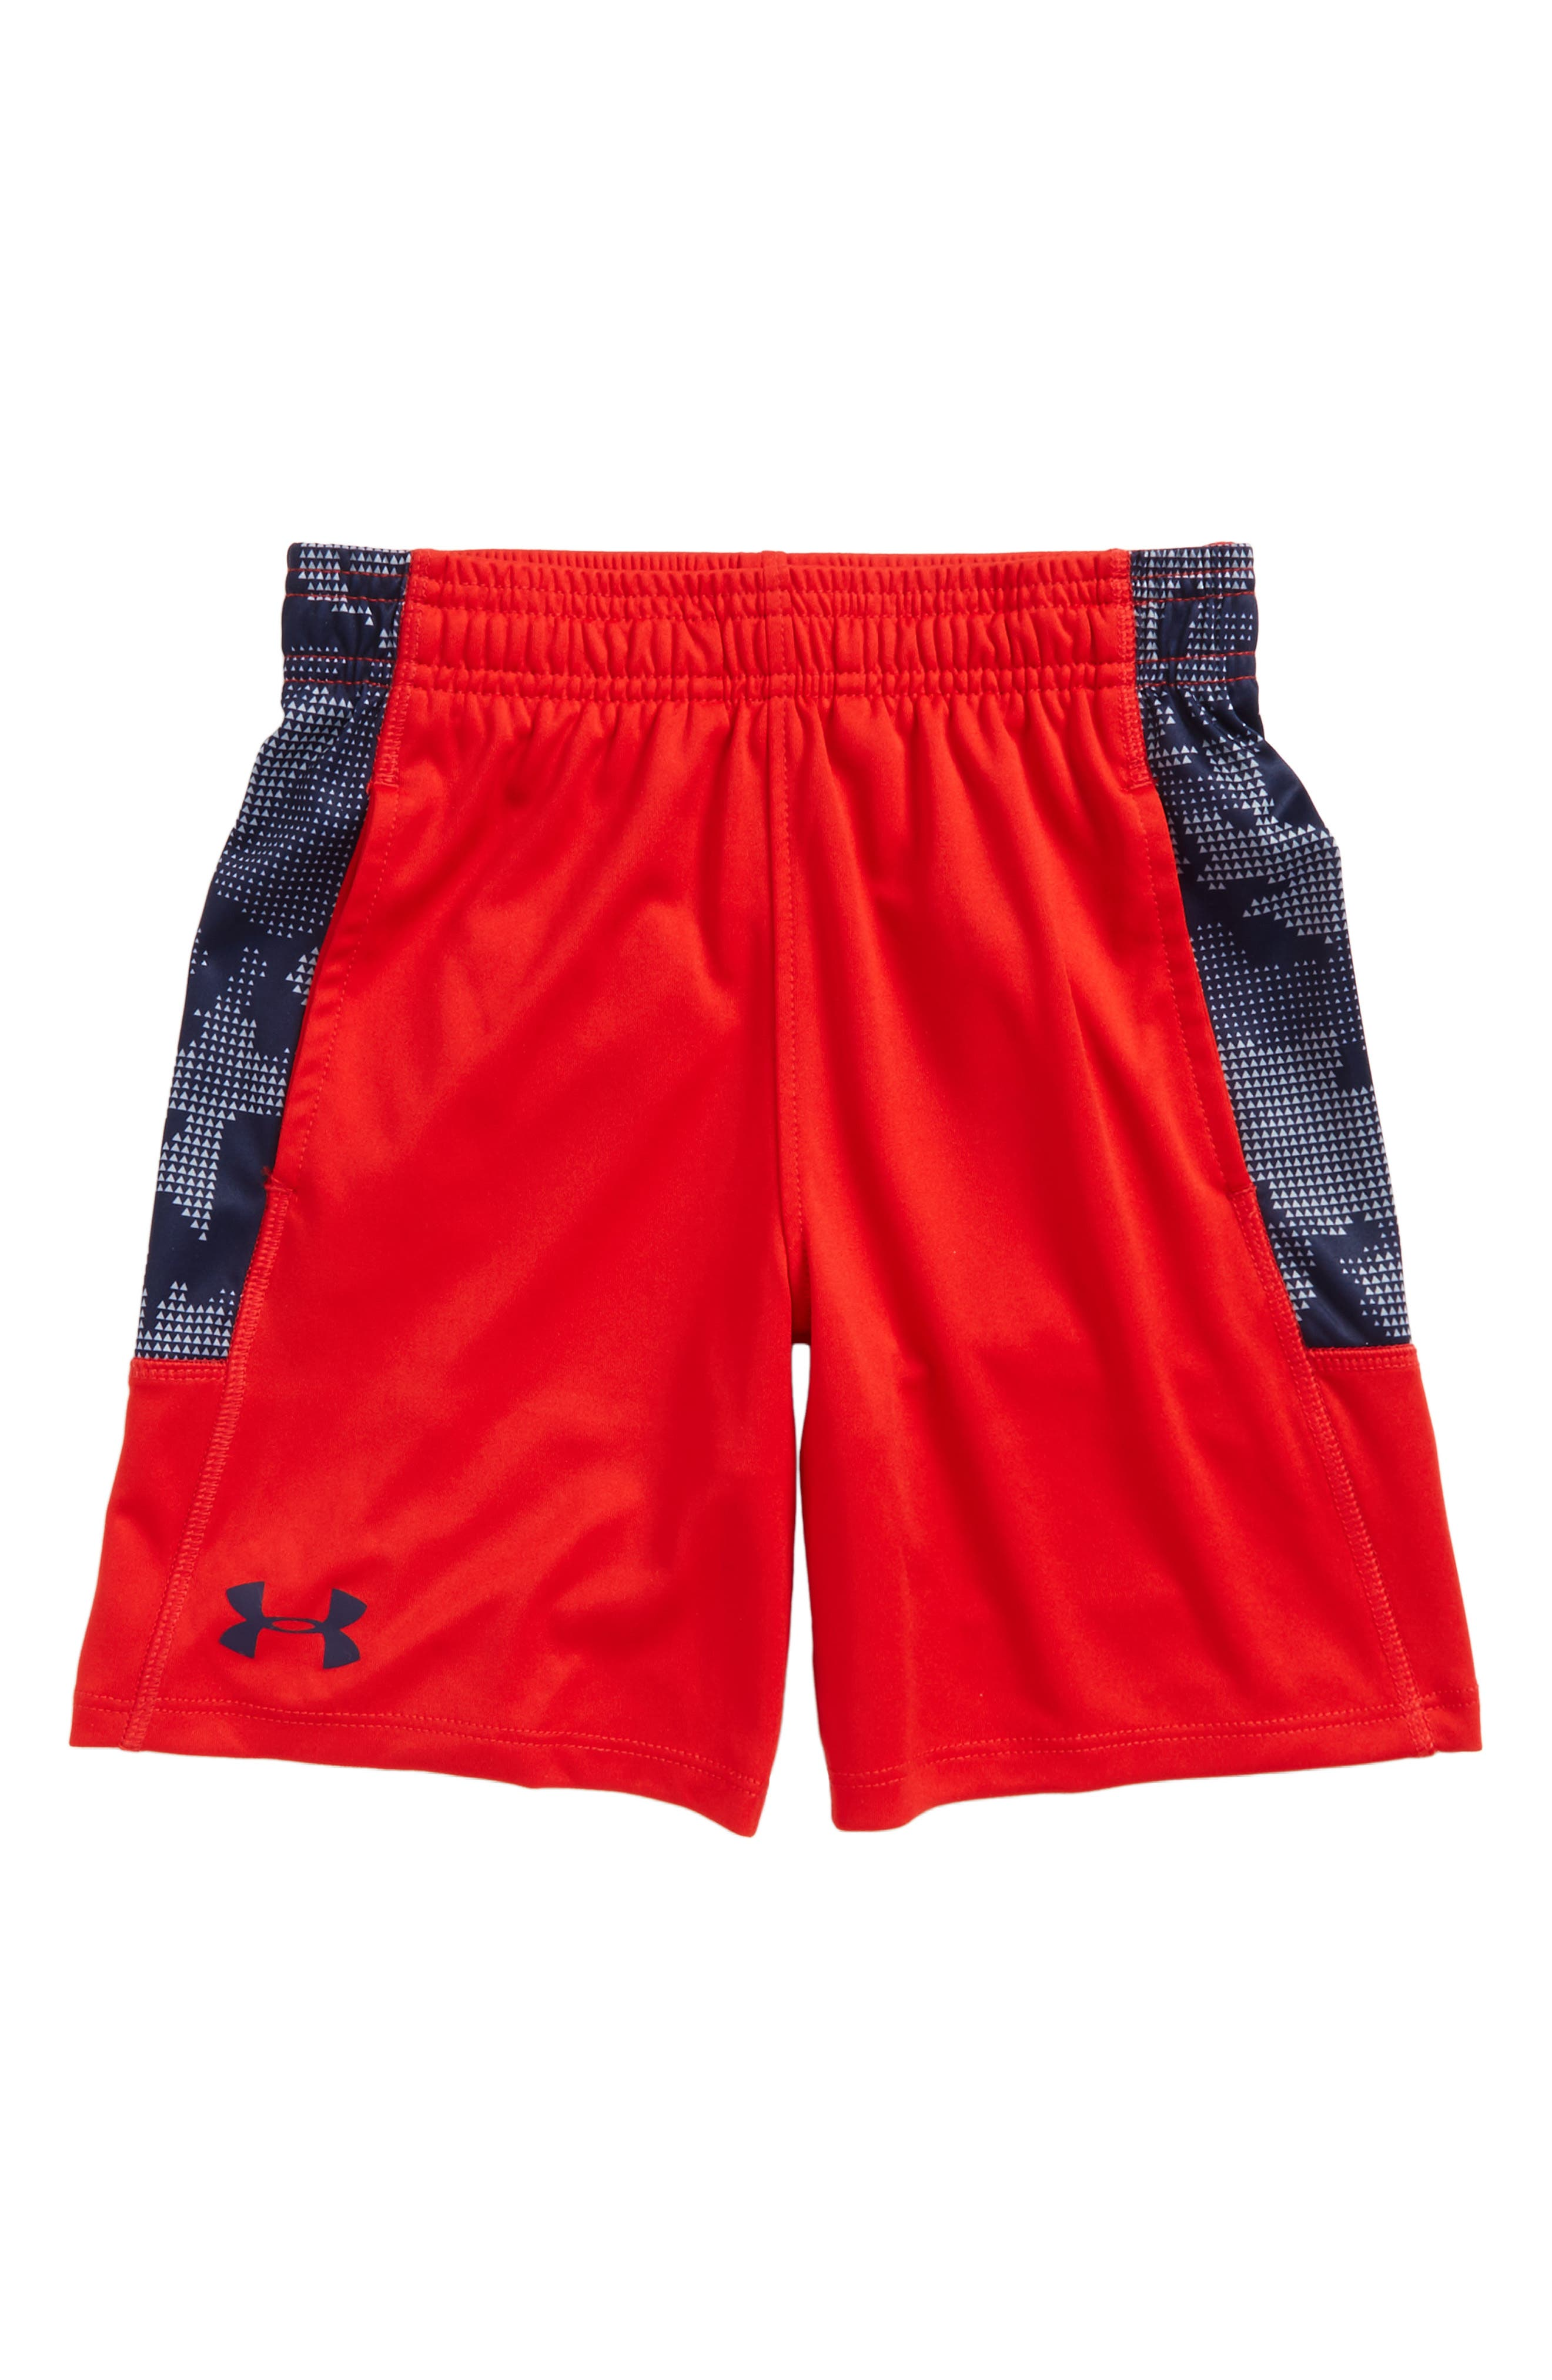 Utility Camo Stunt Athletic Shorts,                         Main,                         color, Red